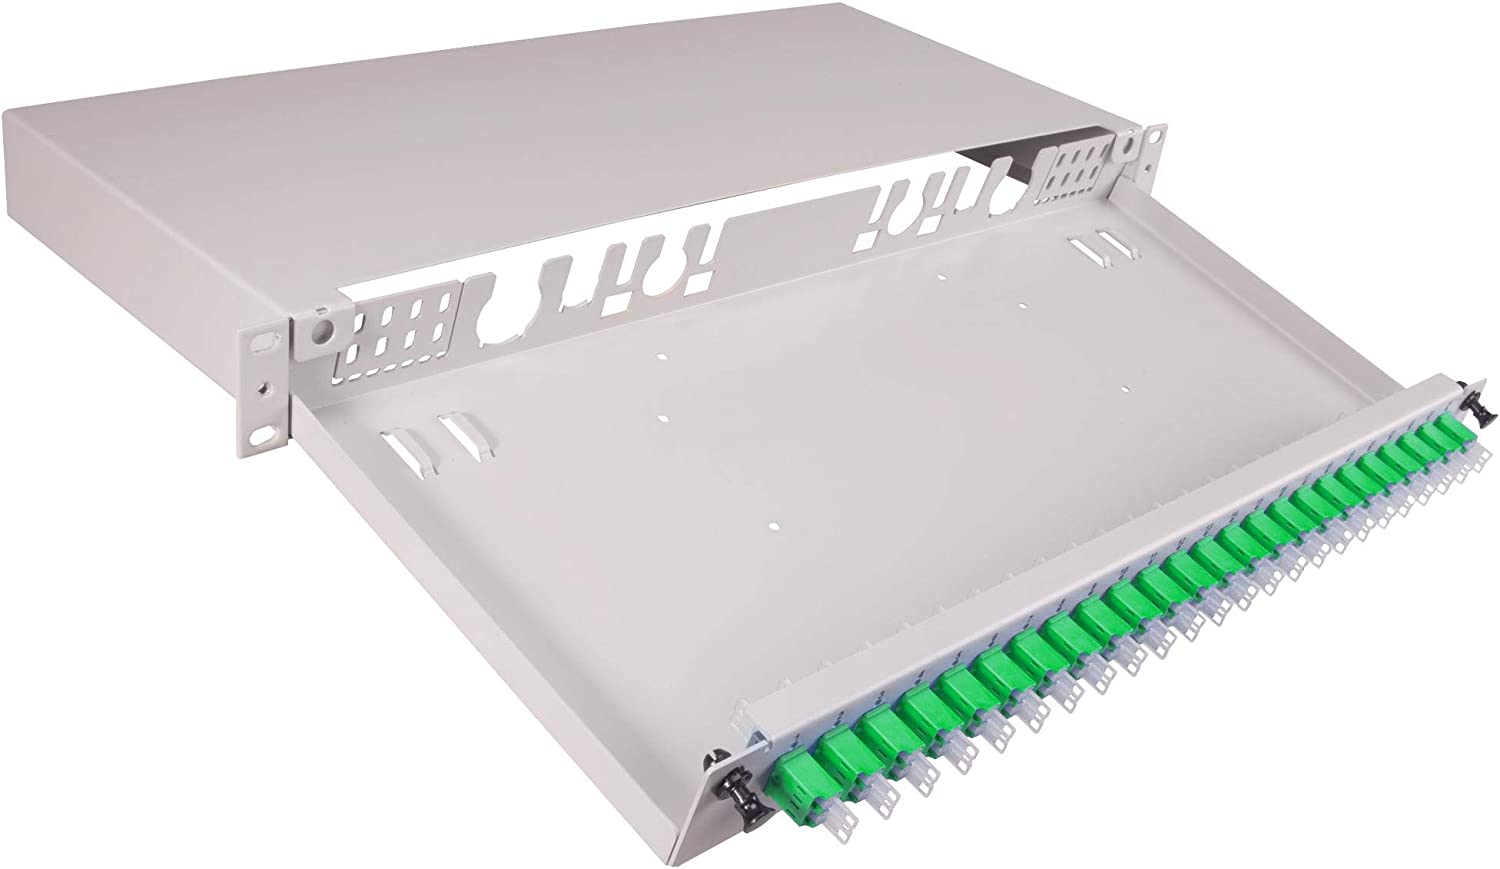 85063227-19 sold out PATCH PANEL Manufacturer OFFicial shop 1U DRAWER TELESCOPIC -85063227